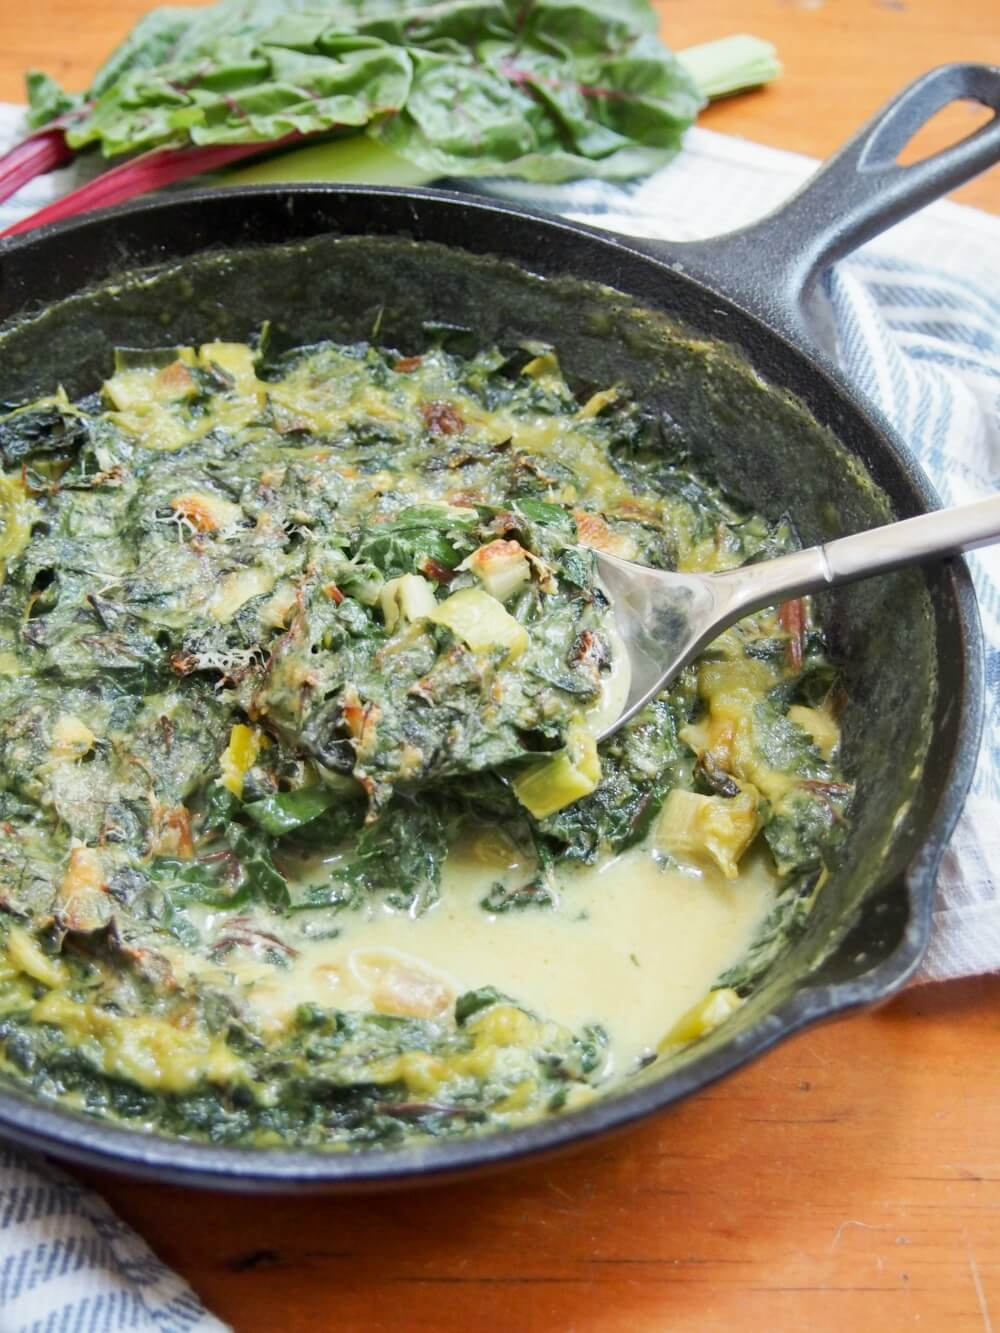 Leek and Swiss chard gratin with spoonful taken from it